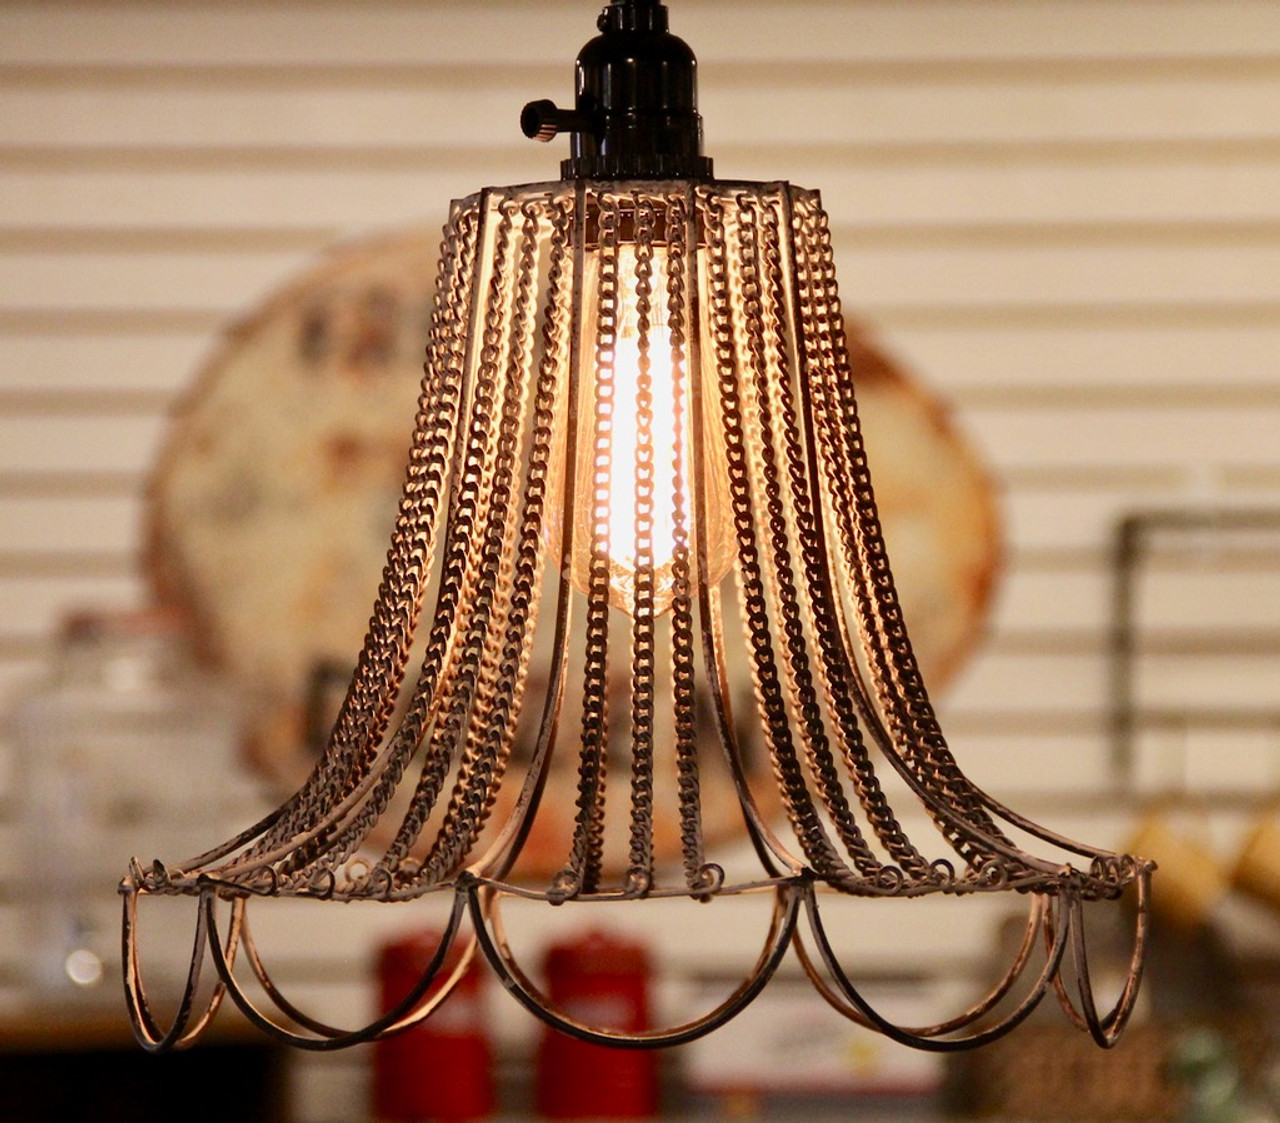 This farmhouse pendant light looks great with a vintage style light bulb.